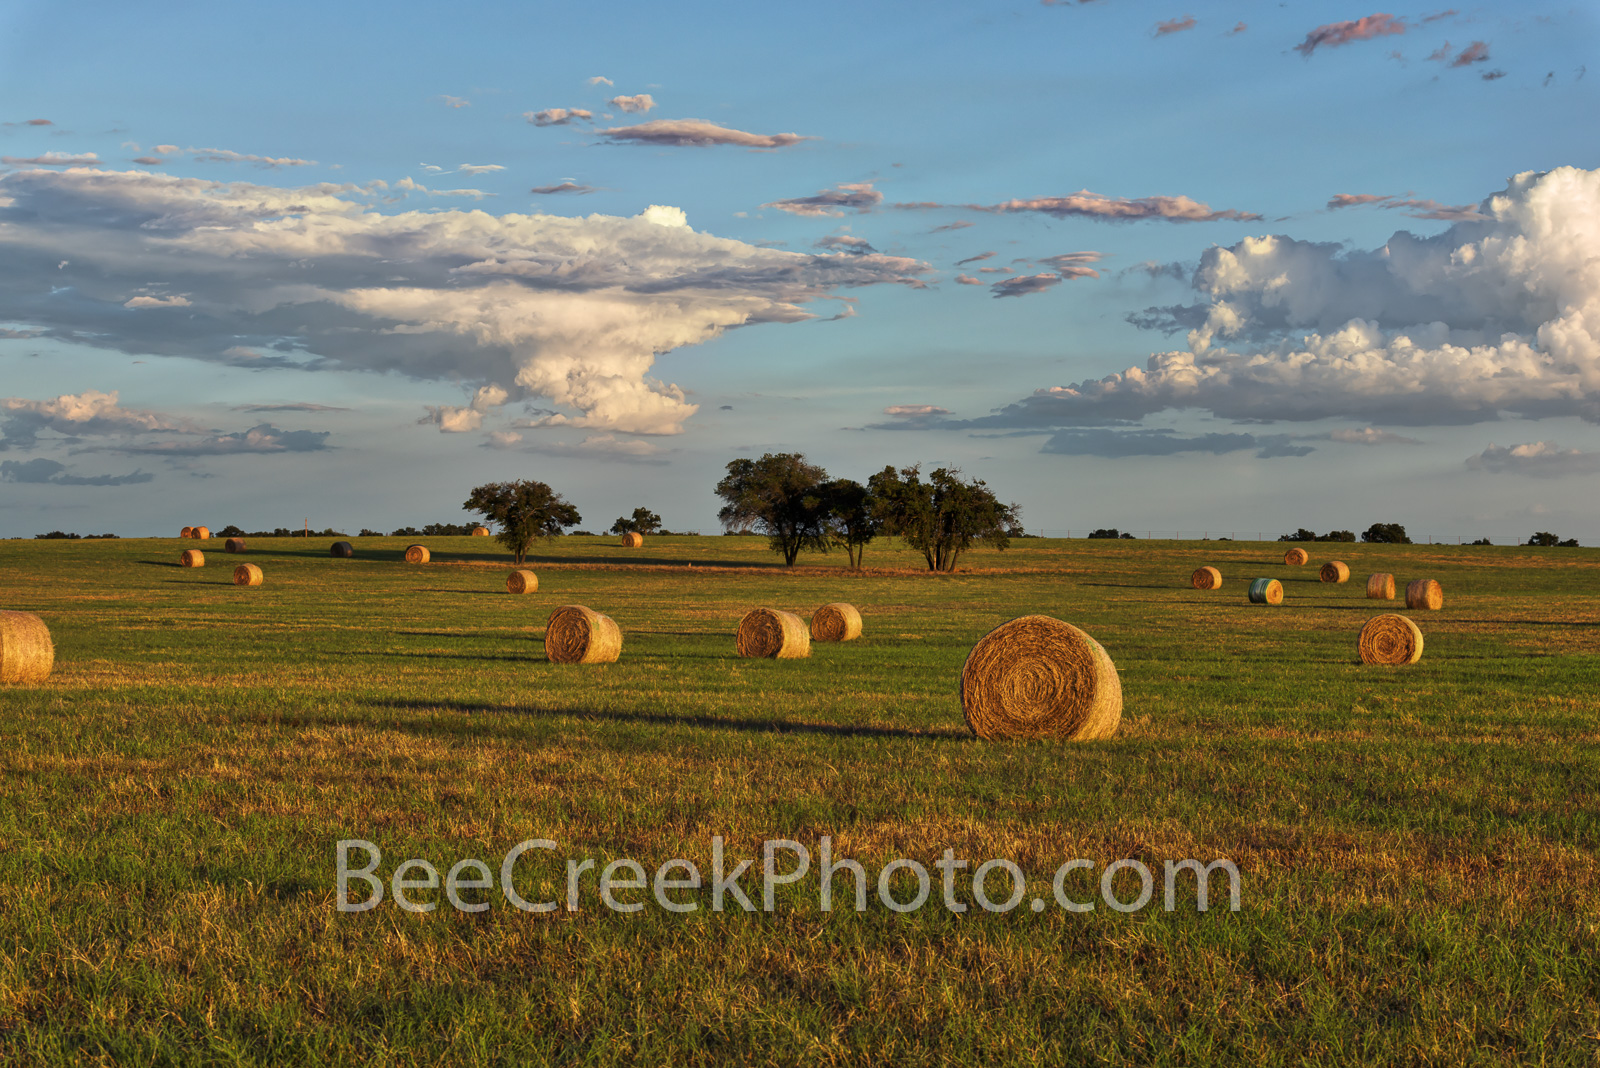 Haybales, hay, bales, Texas Hill Country, landscape, grasses, round bales, feed, horses, cows, goats, sheep, sunset, clouds, evening, farmer, field, llano, Texas, , photo